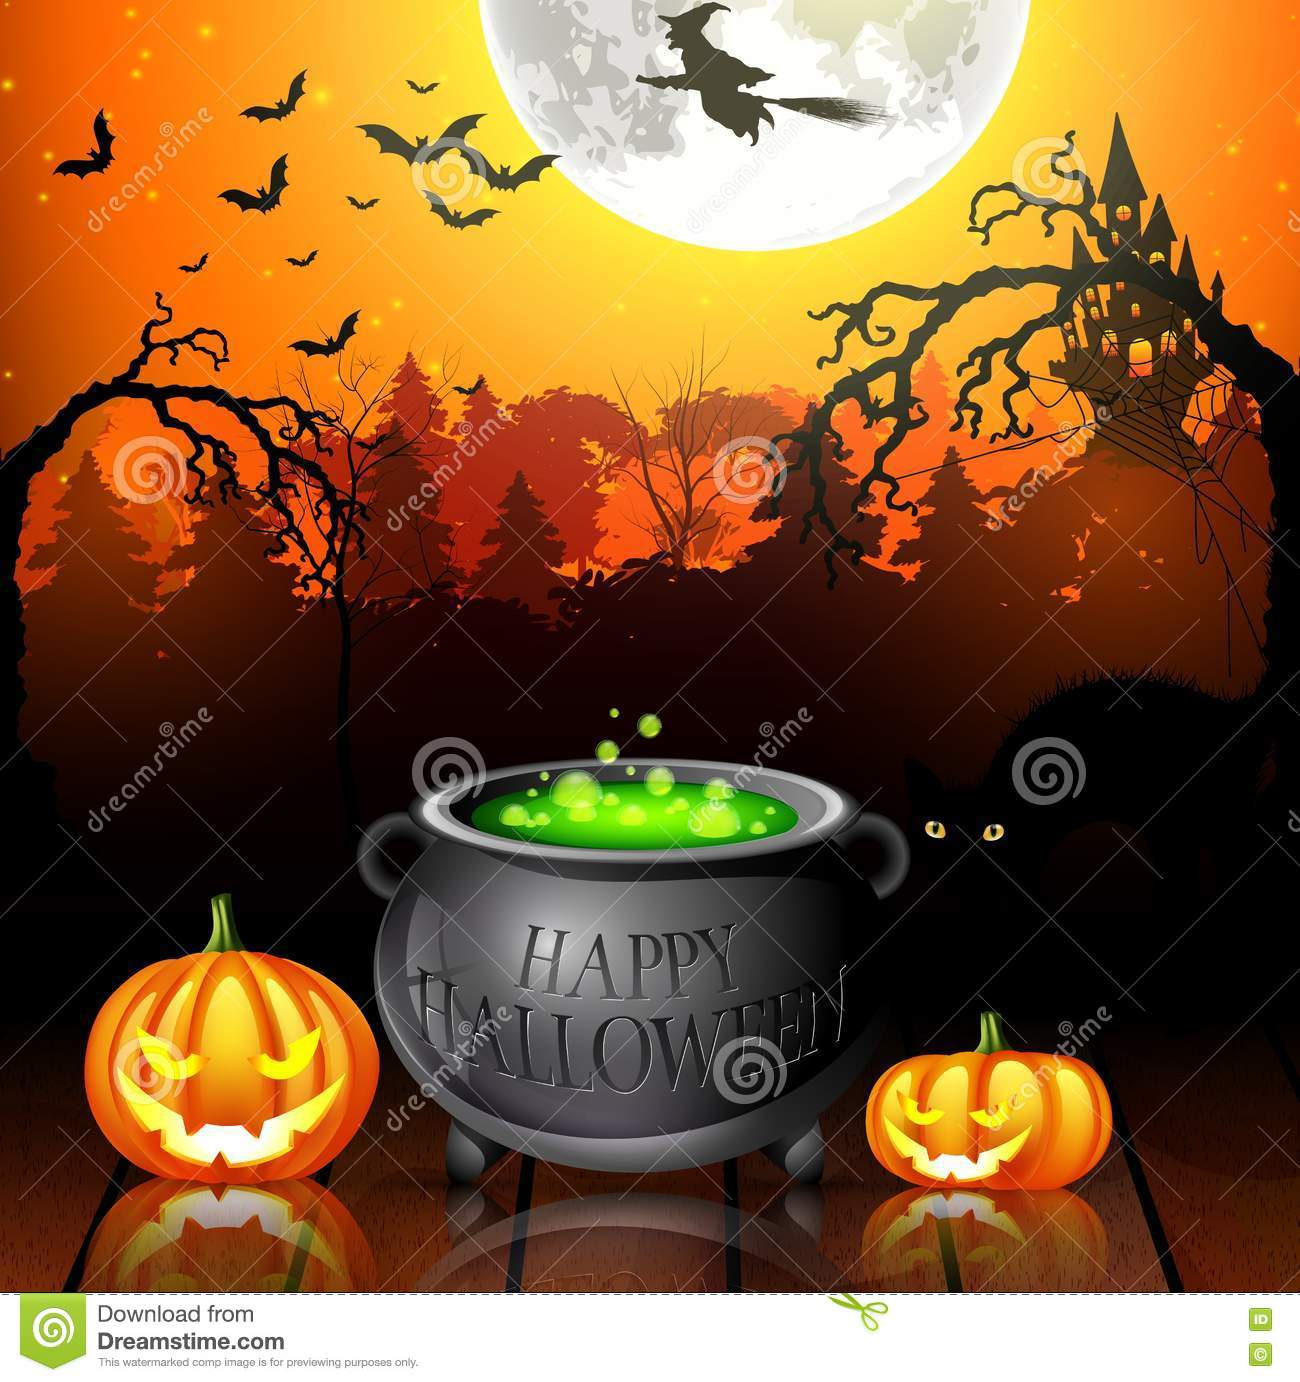 Halloween Party Background With Pumpkins, Pot And Flying Witches ...